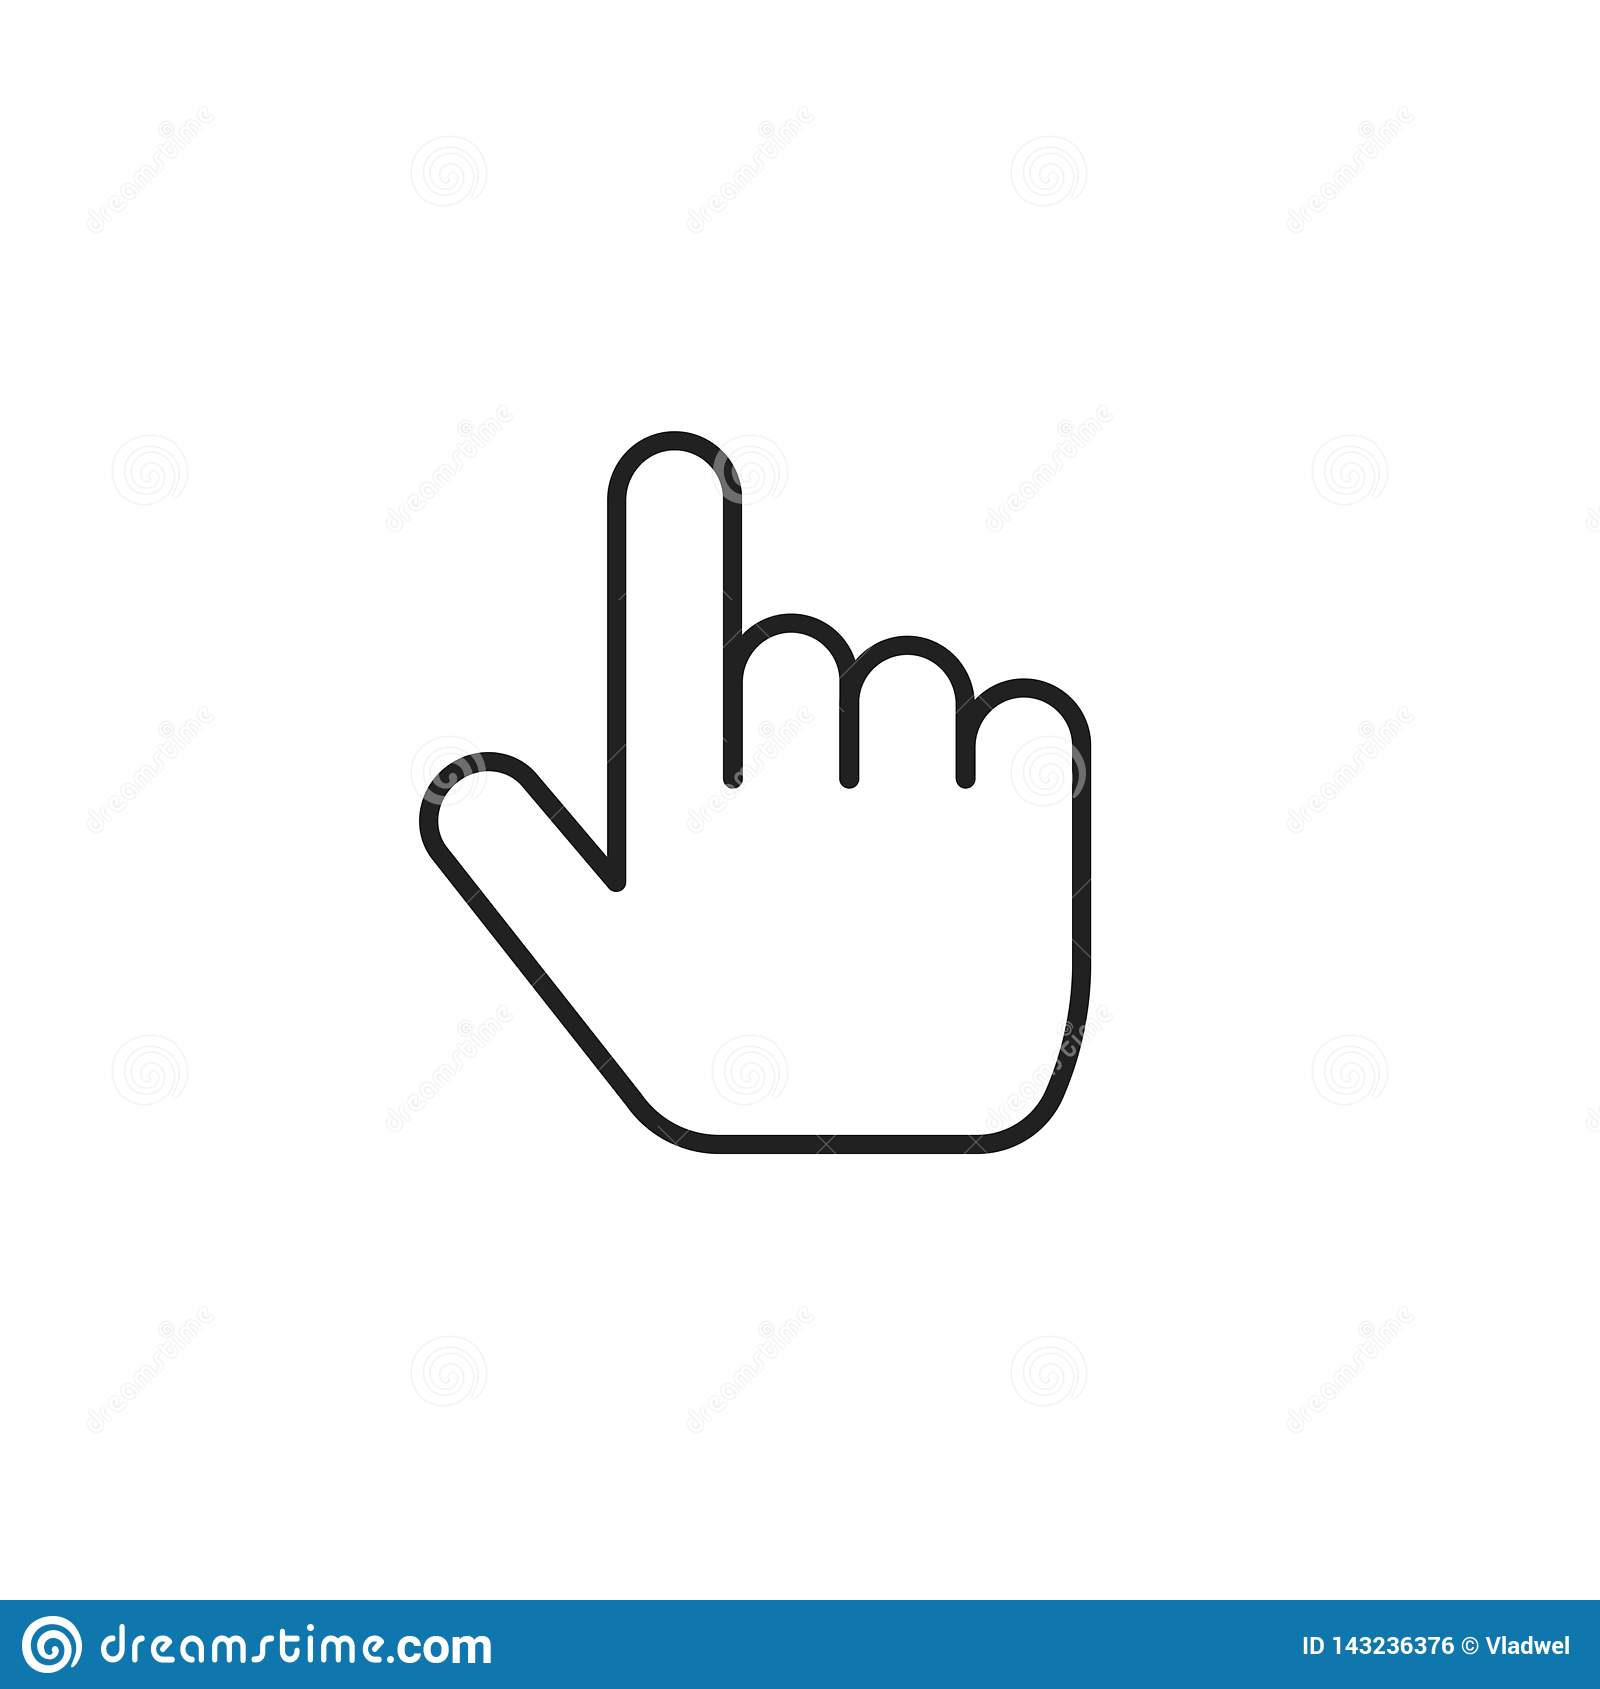 pointer finger icon vector symbol thin line outline index thumb isolated clipart stock vector illustration of outline thumb 143236376 https www dreamstime com pointer finger icon vector symbol thin line outline index thumb isolated clipart image143236376